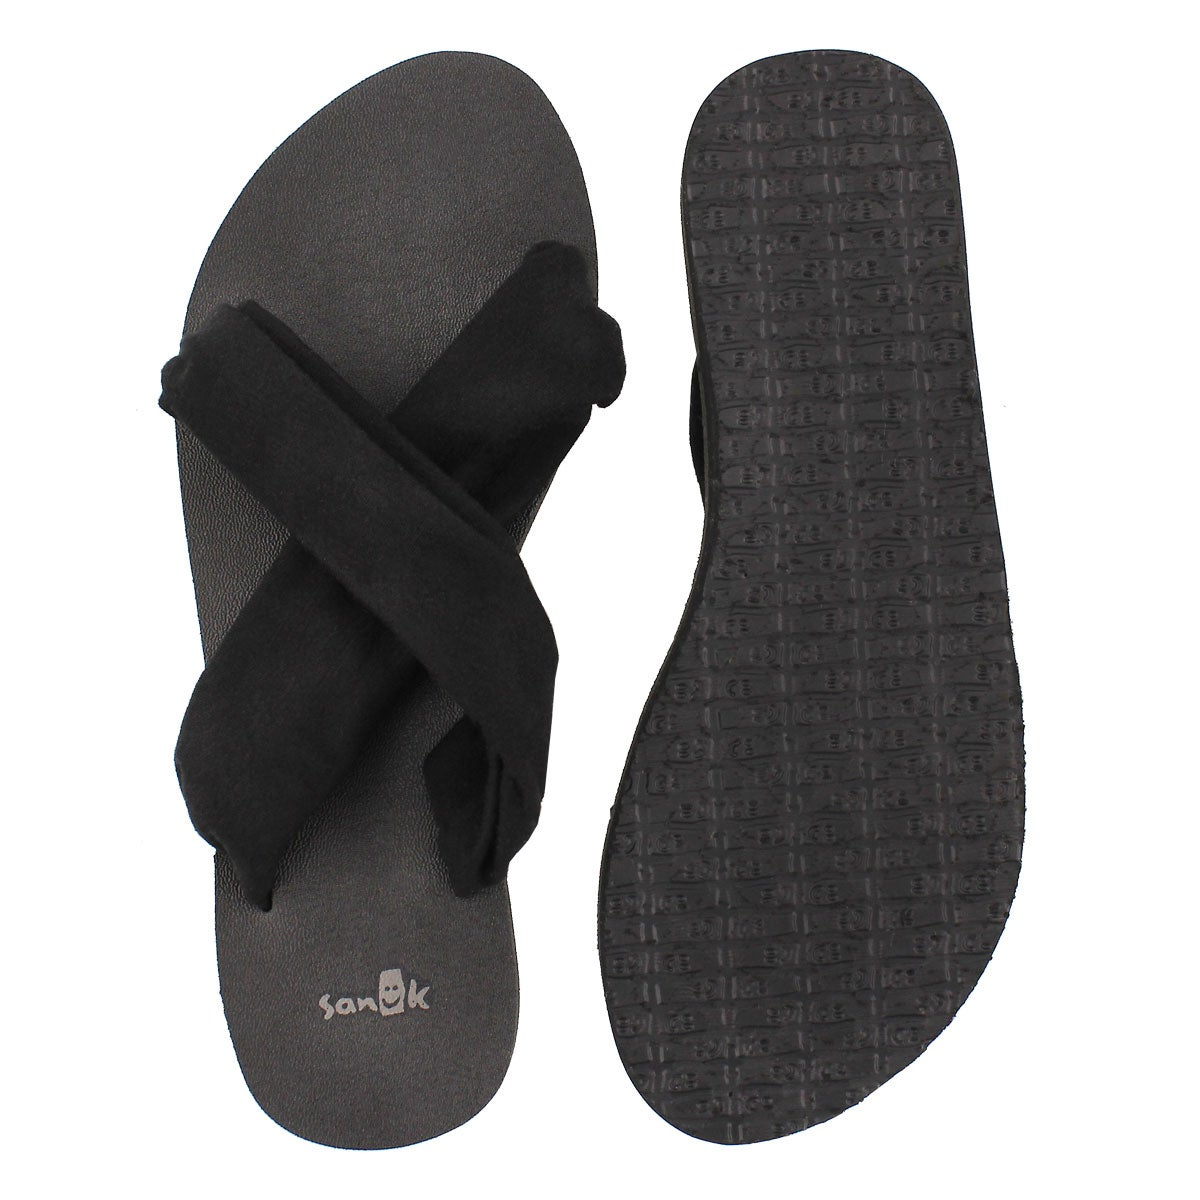 Lds Yoga X-Hale black slide sandal